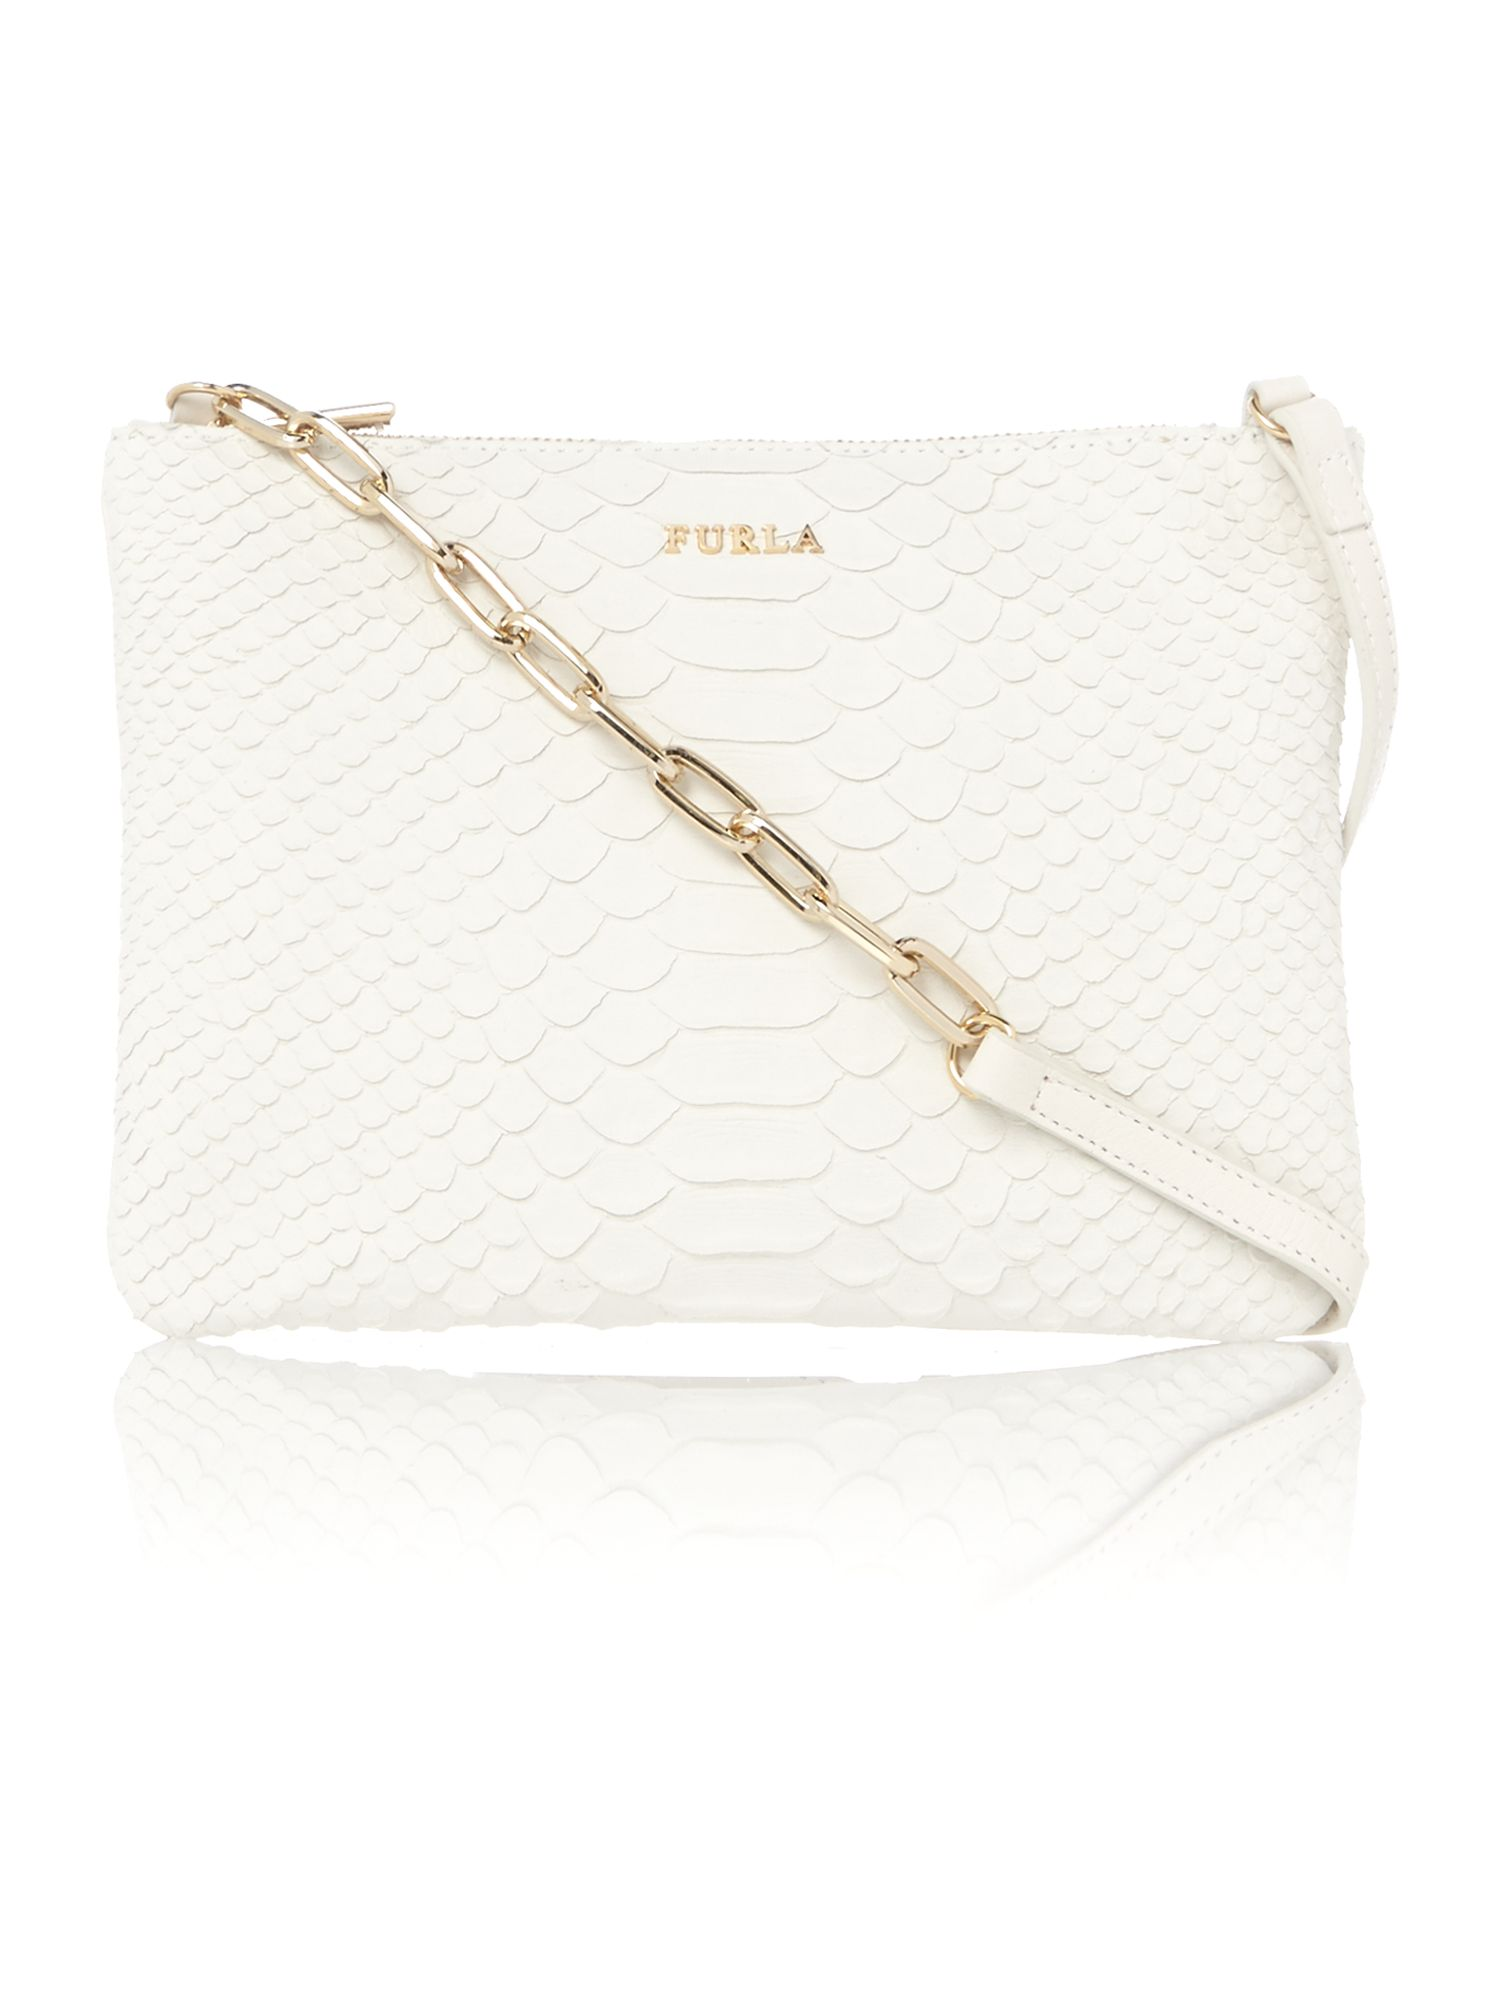 Royal white snake cross body bag